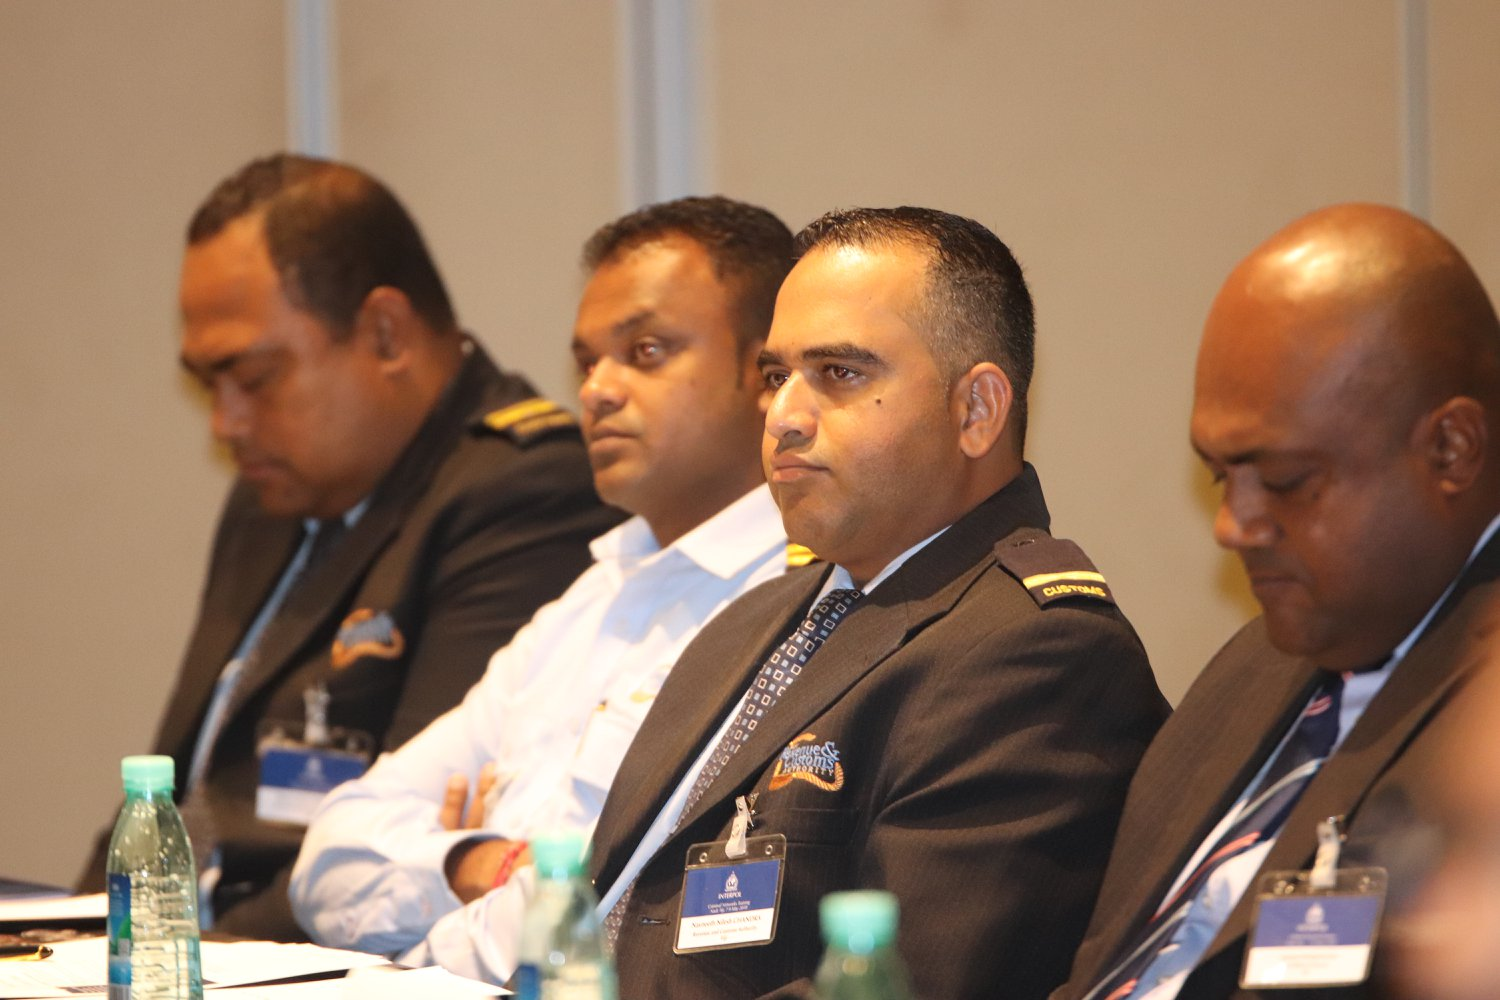 Participants at the INTERPOL Criminal Networks Training at the Sofitel Fiji Resort and Spa on Denarau Island on May 7, 2018. Photo: Fiji Police Force